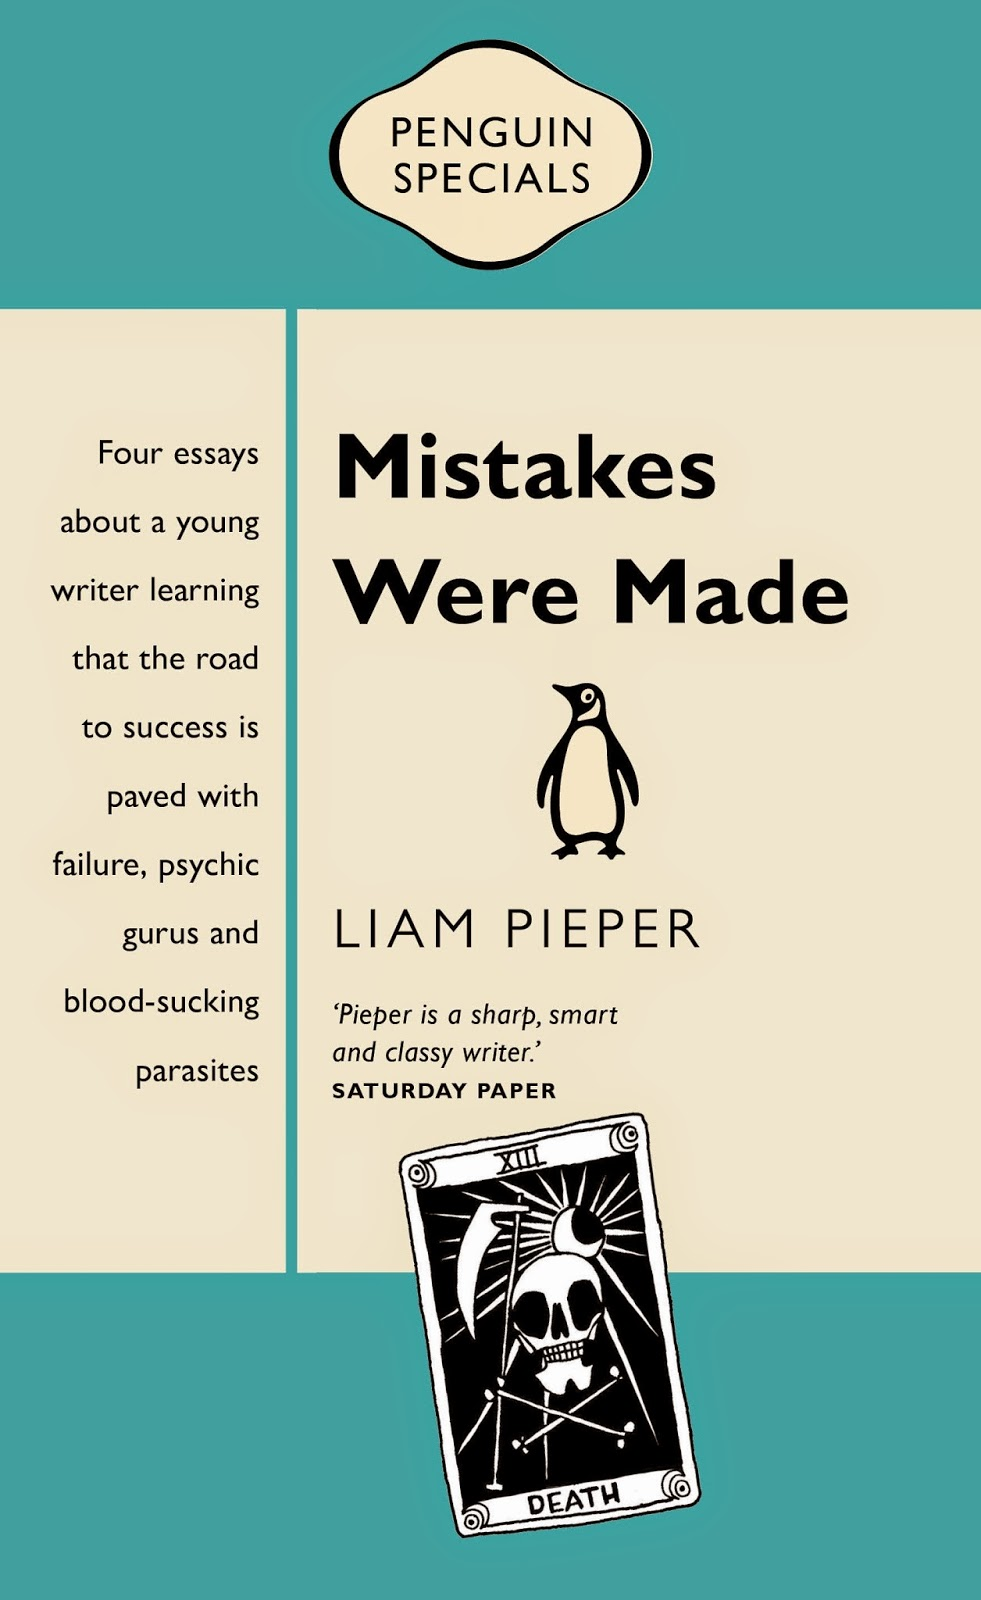 narrative essay learning from mistakes